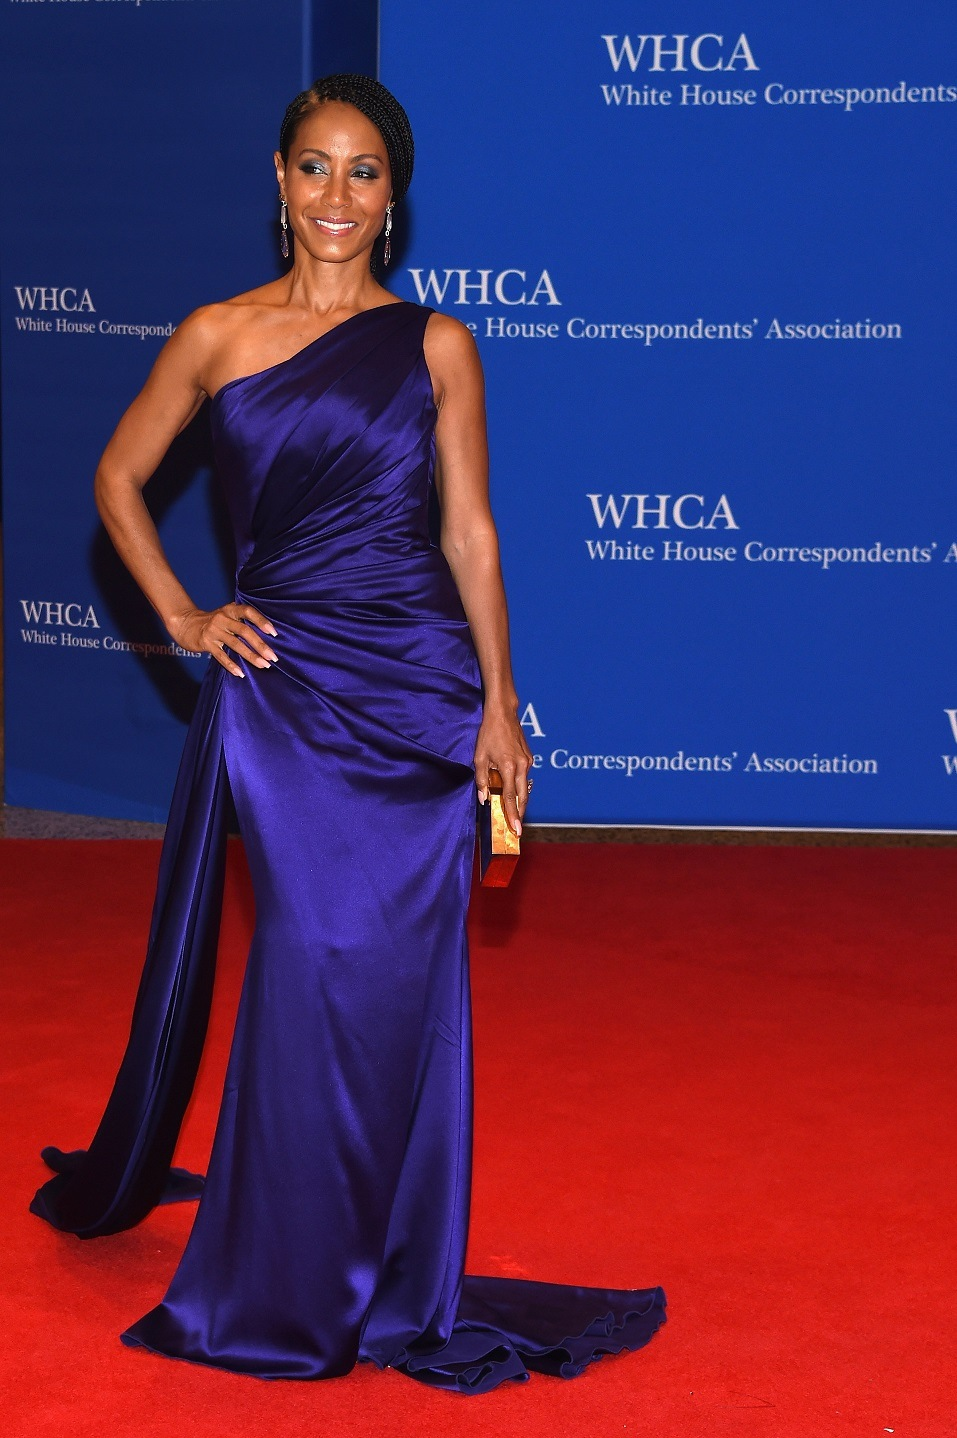 Actress Jada Pinkett Smith attends the 102nd White House Correspondents' Association Dinner